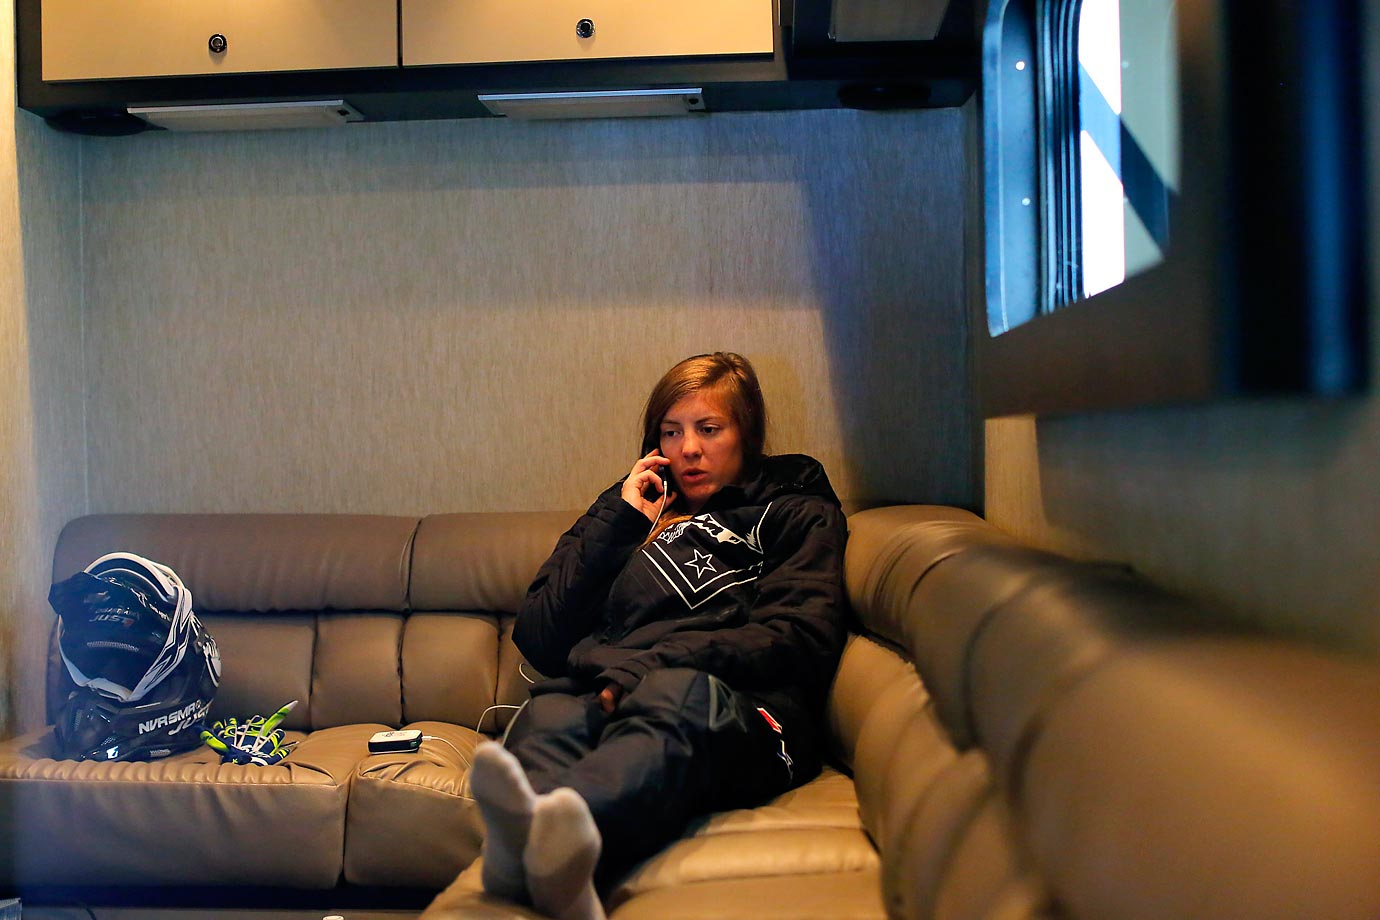 Vicki relaxes in her racing team's ( Hansen Racing ) trailer and talks on her cell prior to race day in Arlington, TX.